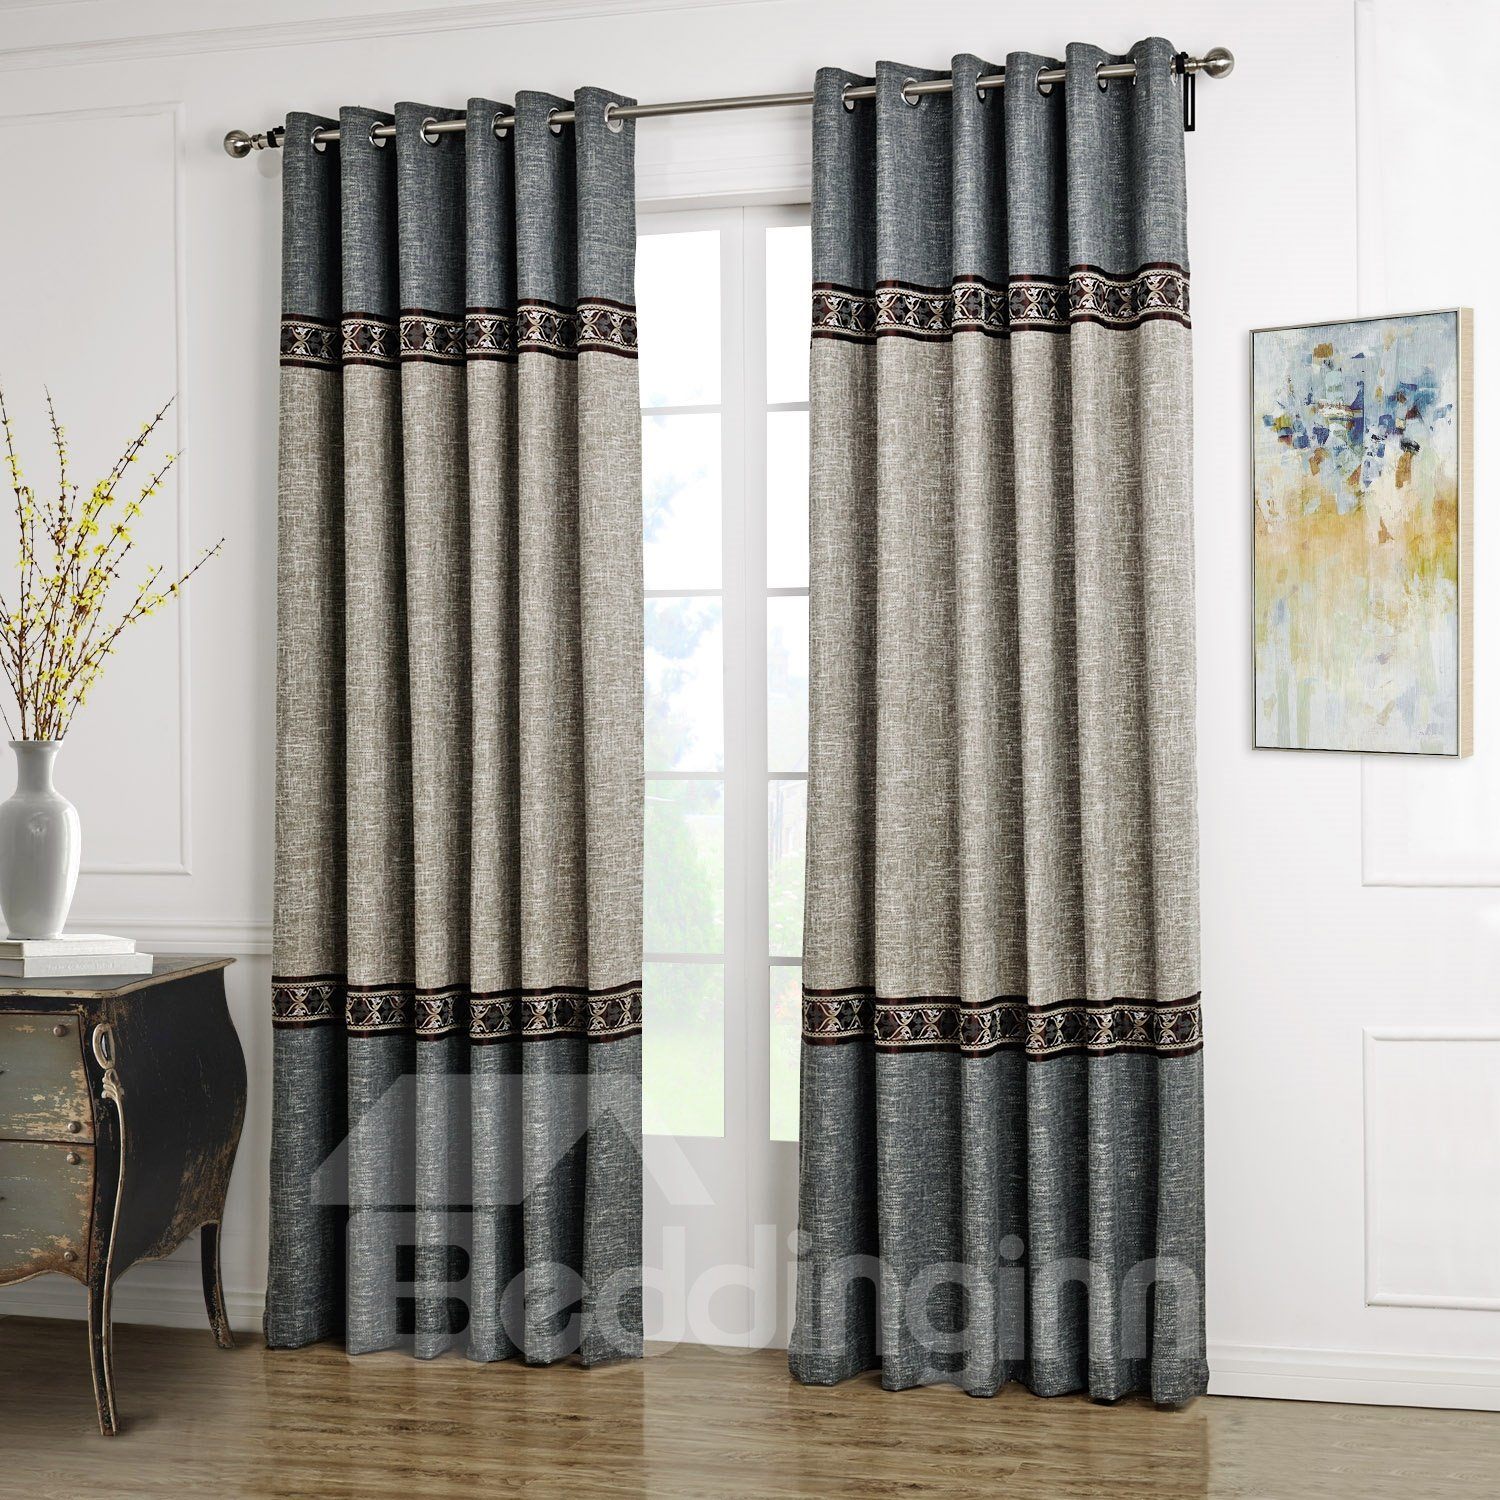 Fantastic Blue And Gray Joint Color Decorative Border Design Custom Curtain